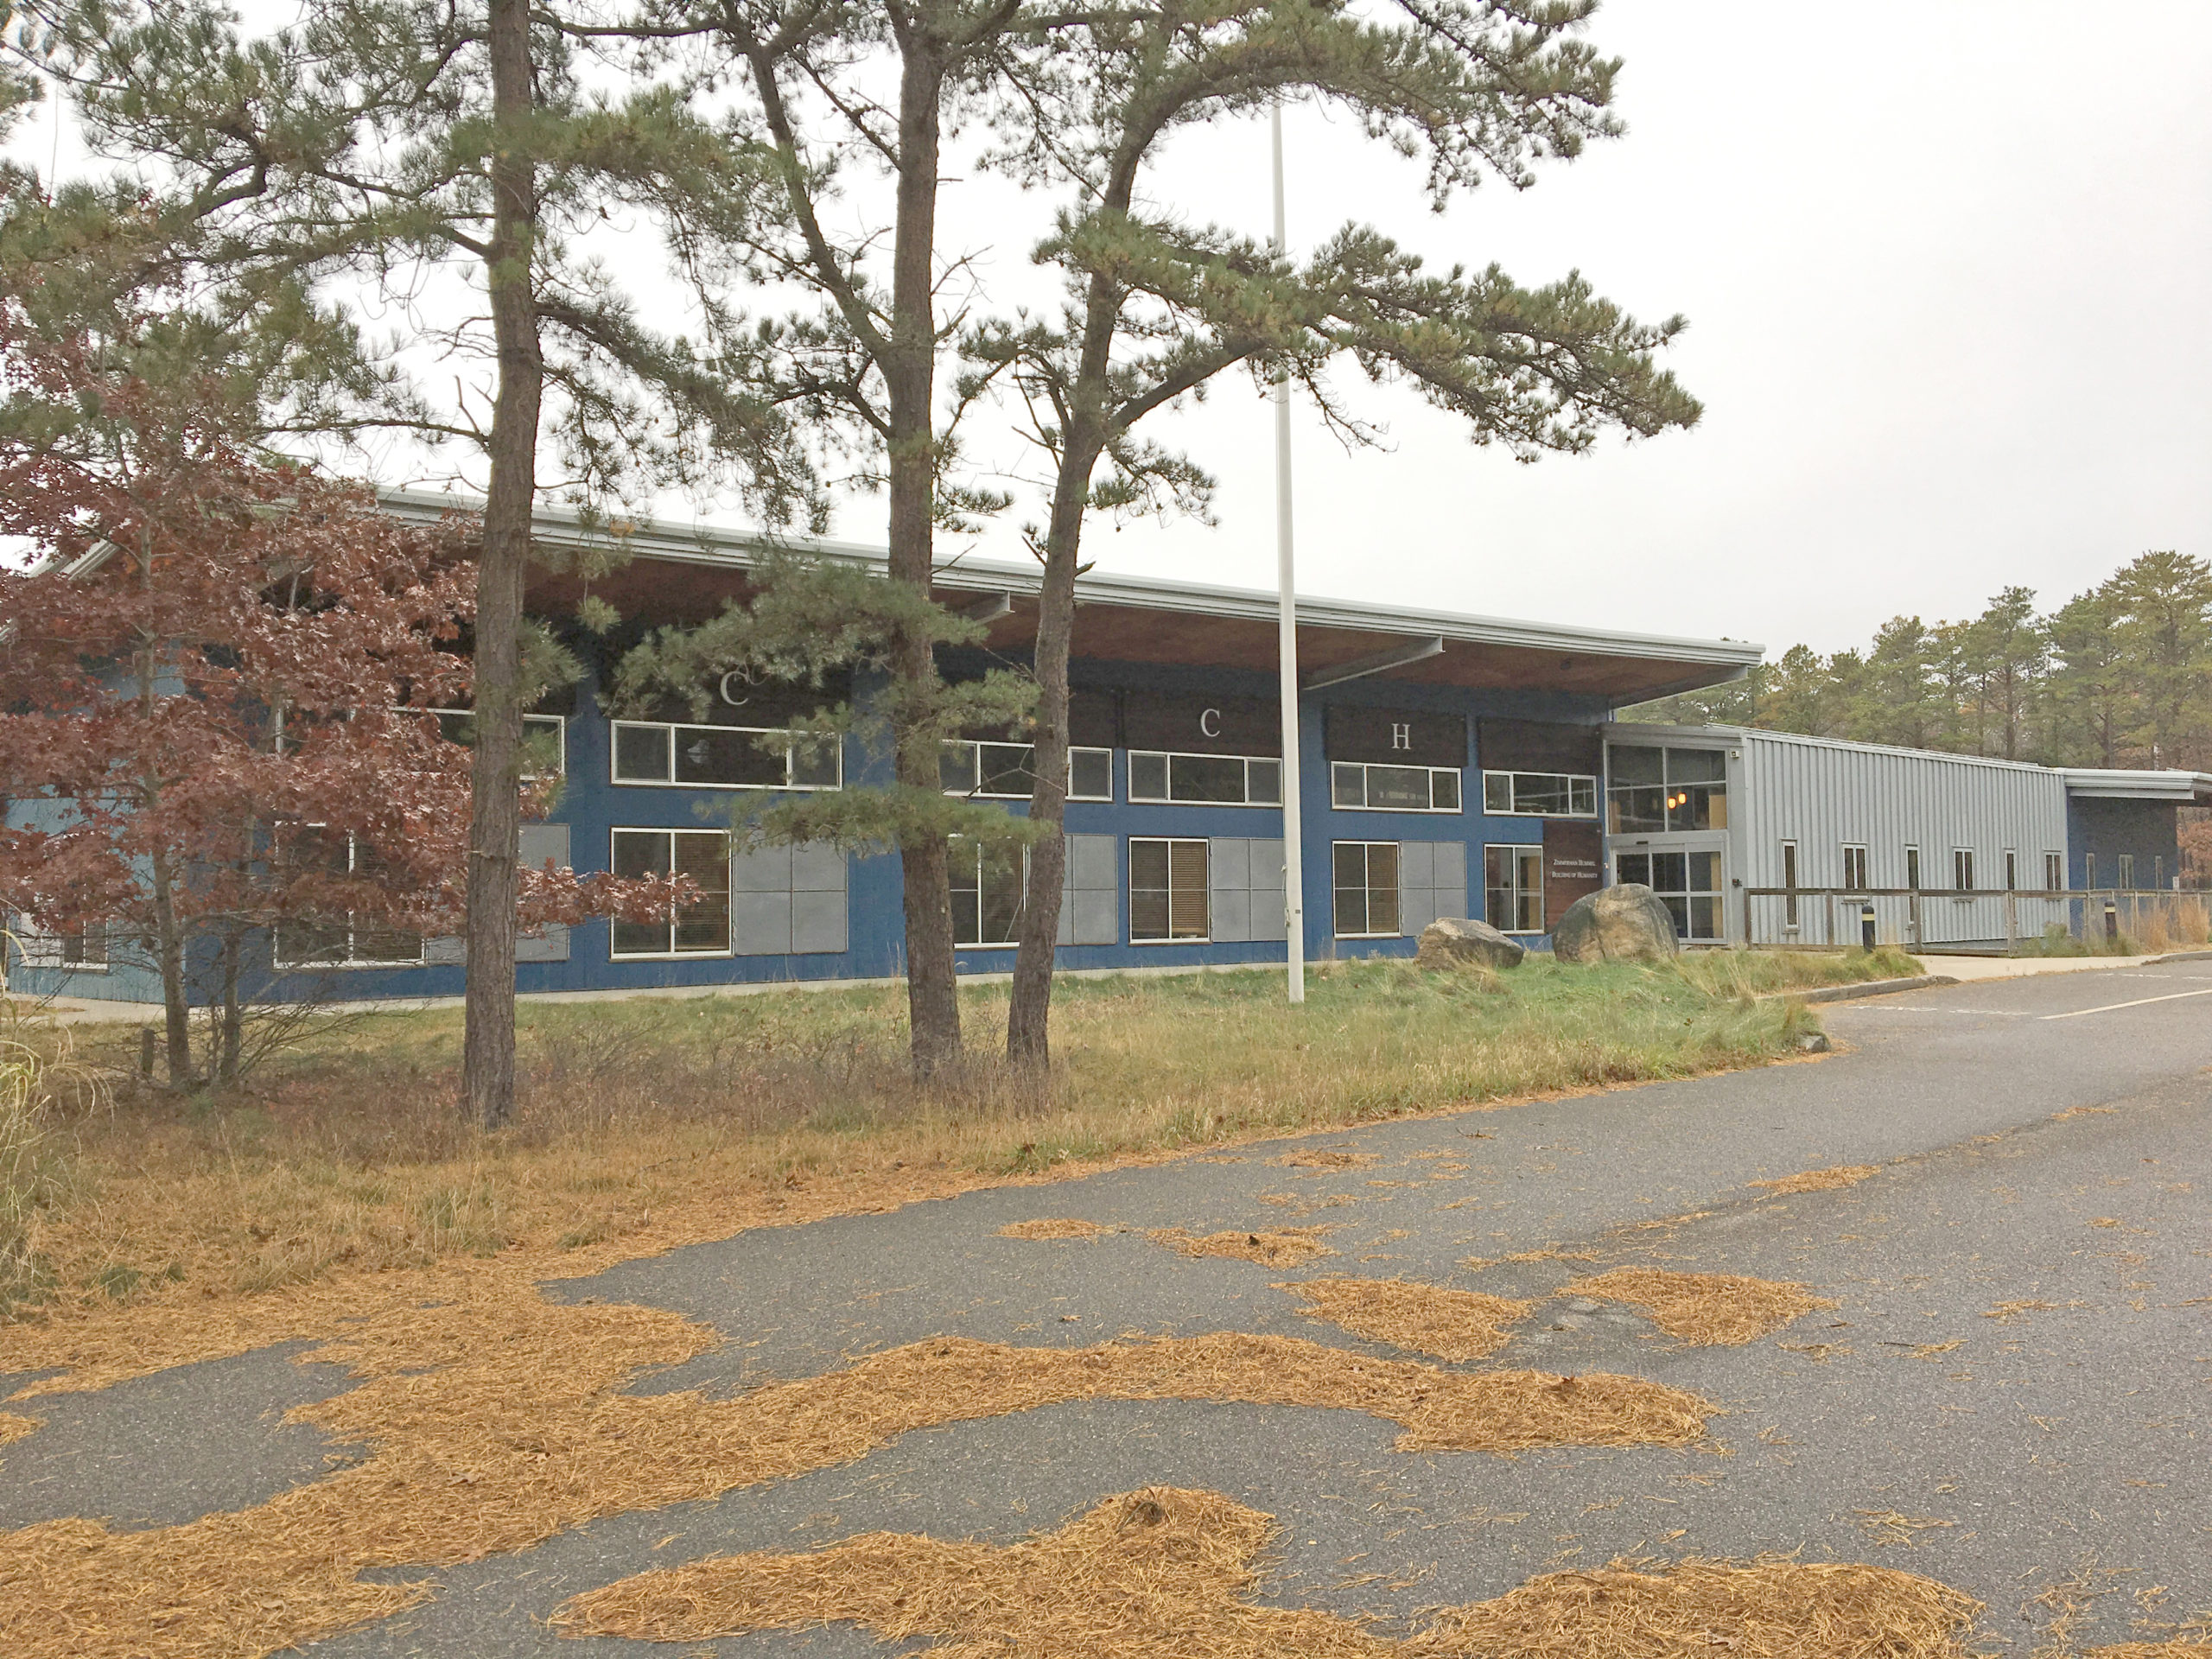 East Hampton Town is preparing the former CDCH building on Stephen Hands Path to be used as a vaccination center in hopes that having the logistics in place will attract a supply of vaccine shots from the state distribution program.